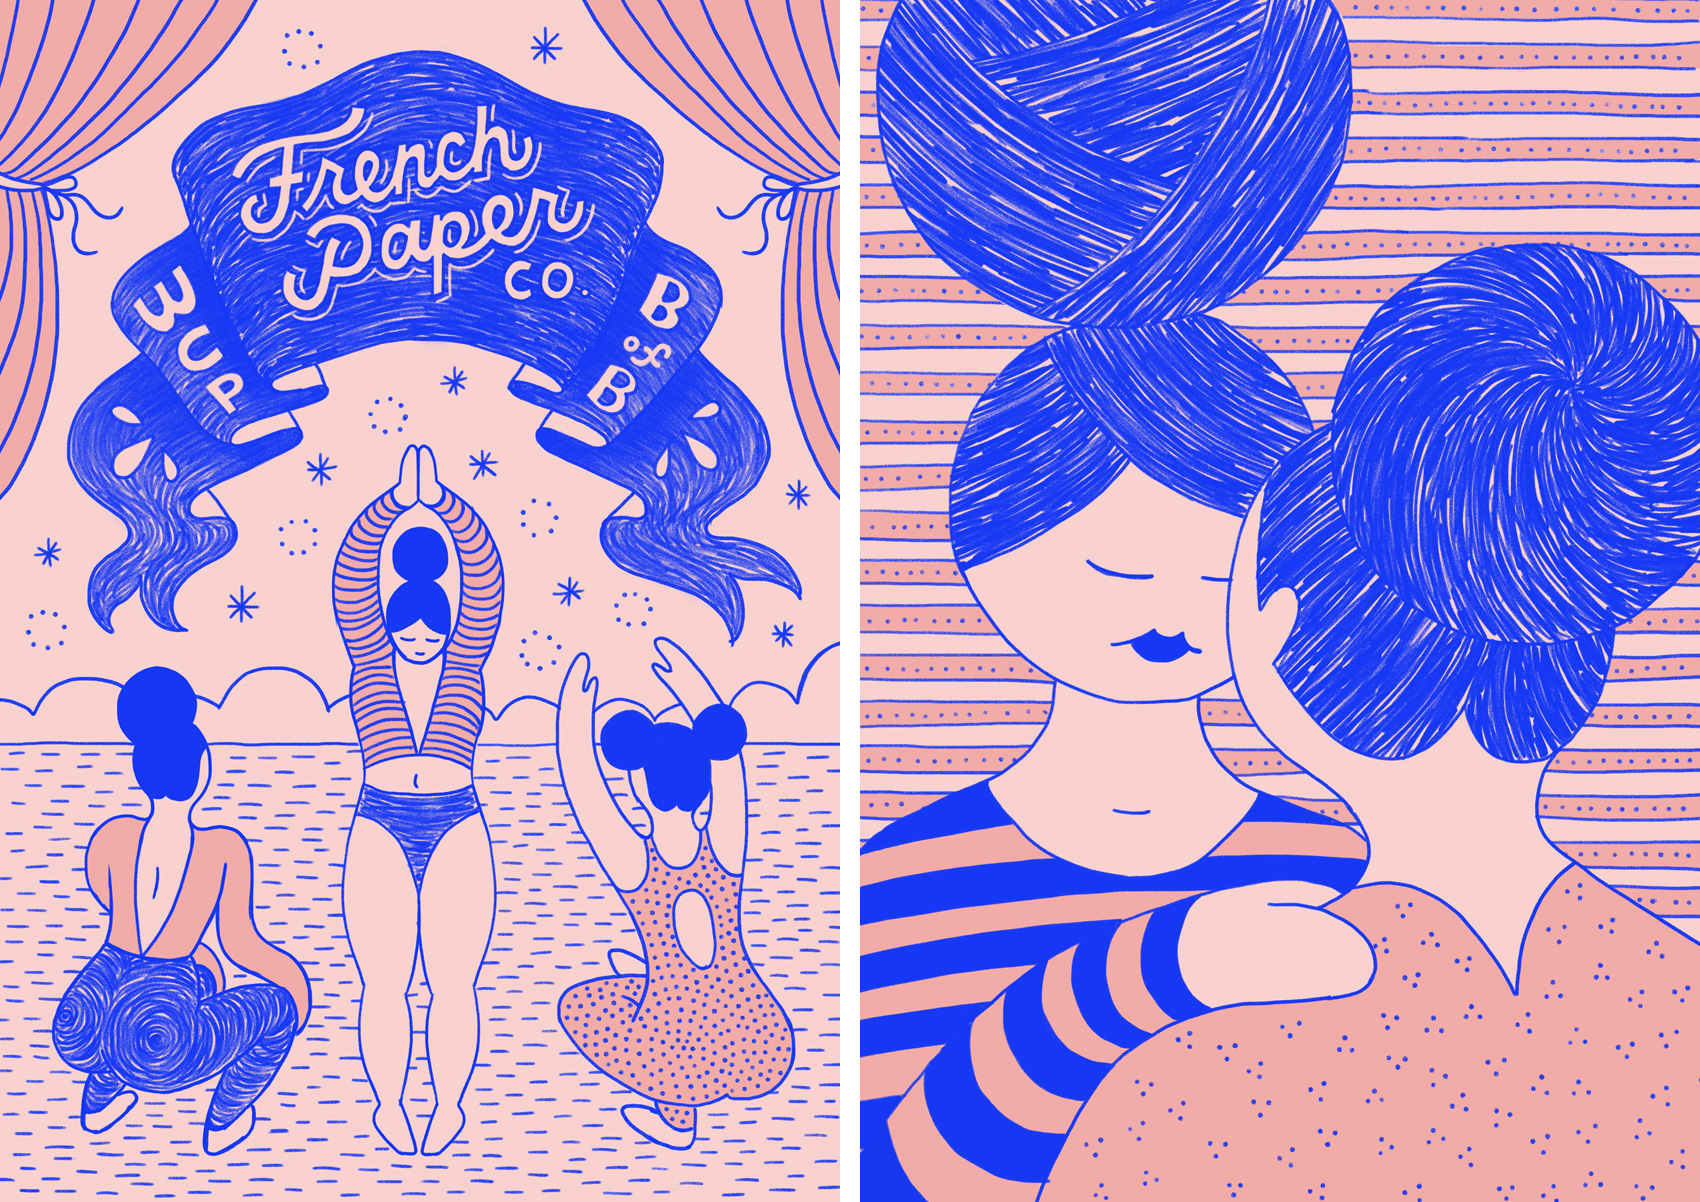 Trio of framed posters, blue ink on pink paper, of french circus performers. Left image is three women under a banner (French Paper Company), right image is two women chatting closely.